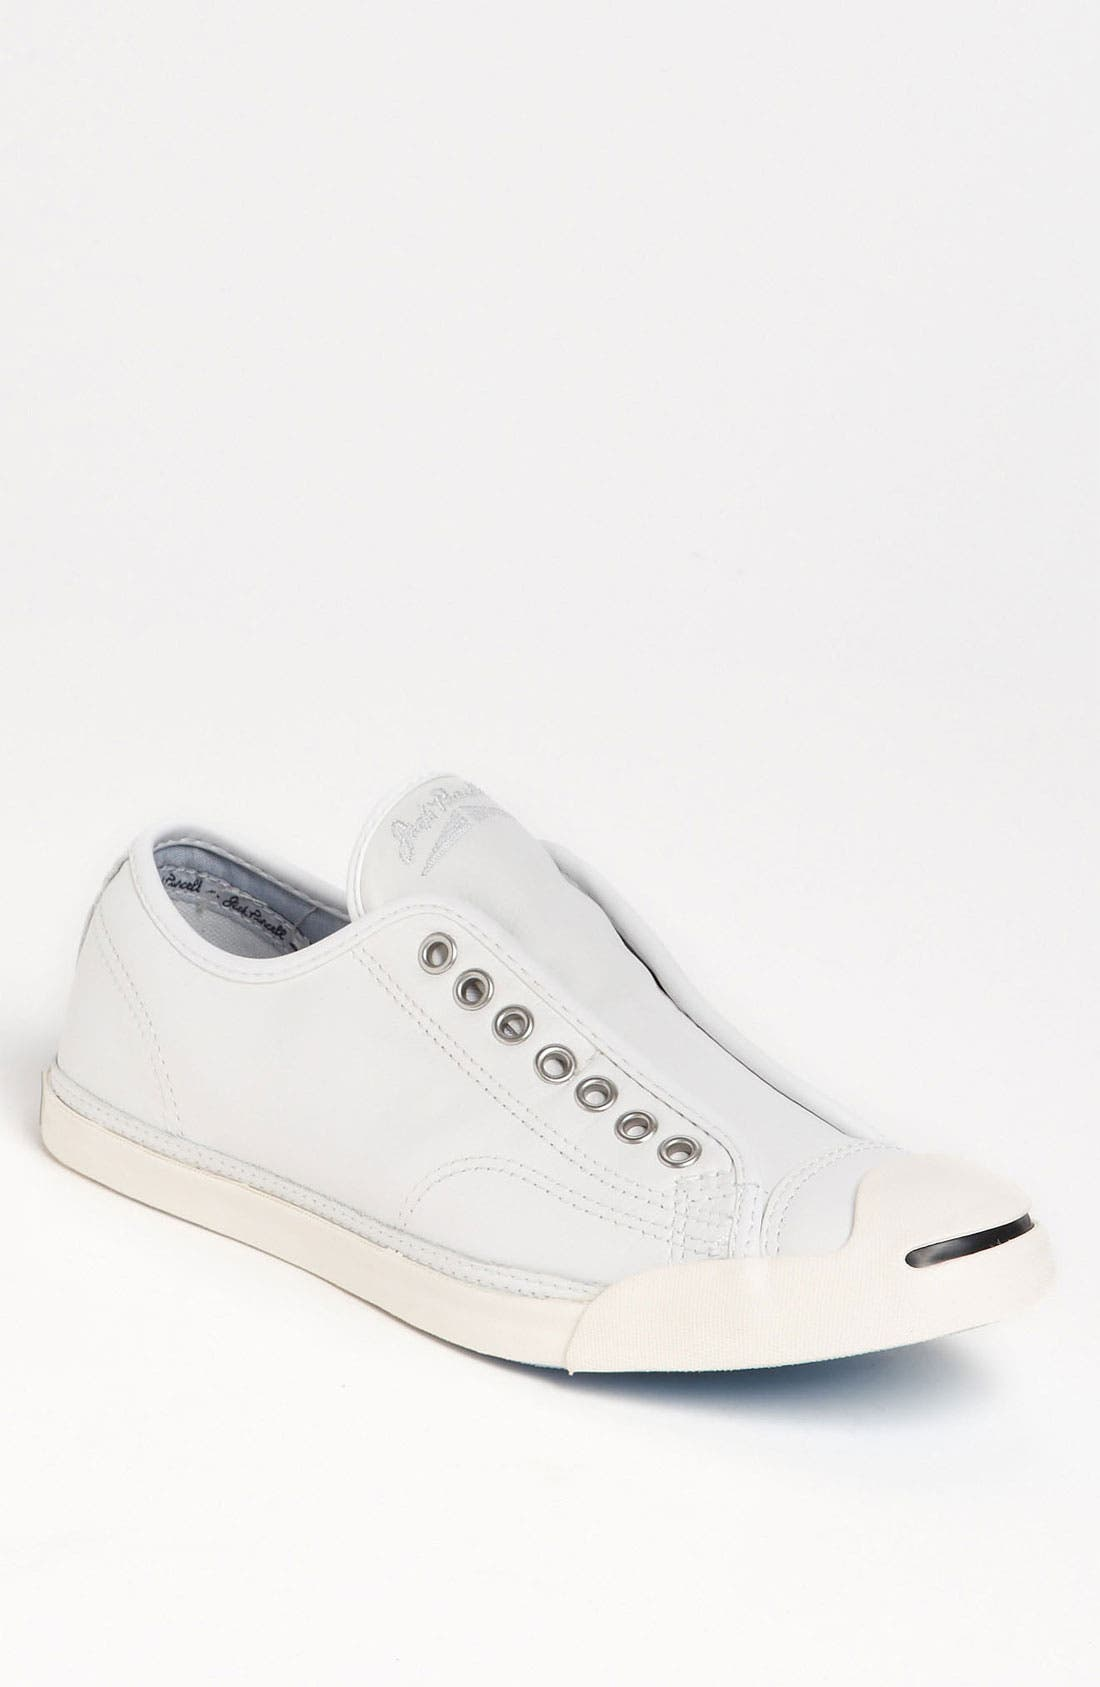 Alternate Image 1 Selected - Converse 'Jack Purcell LP' Slip-On Sneaker